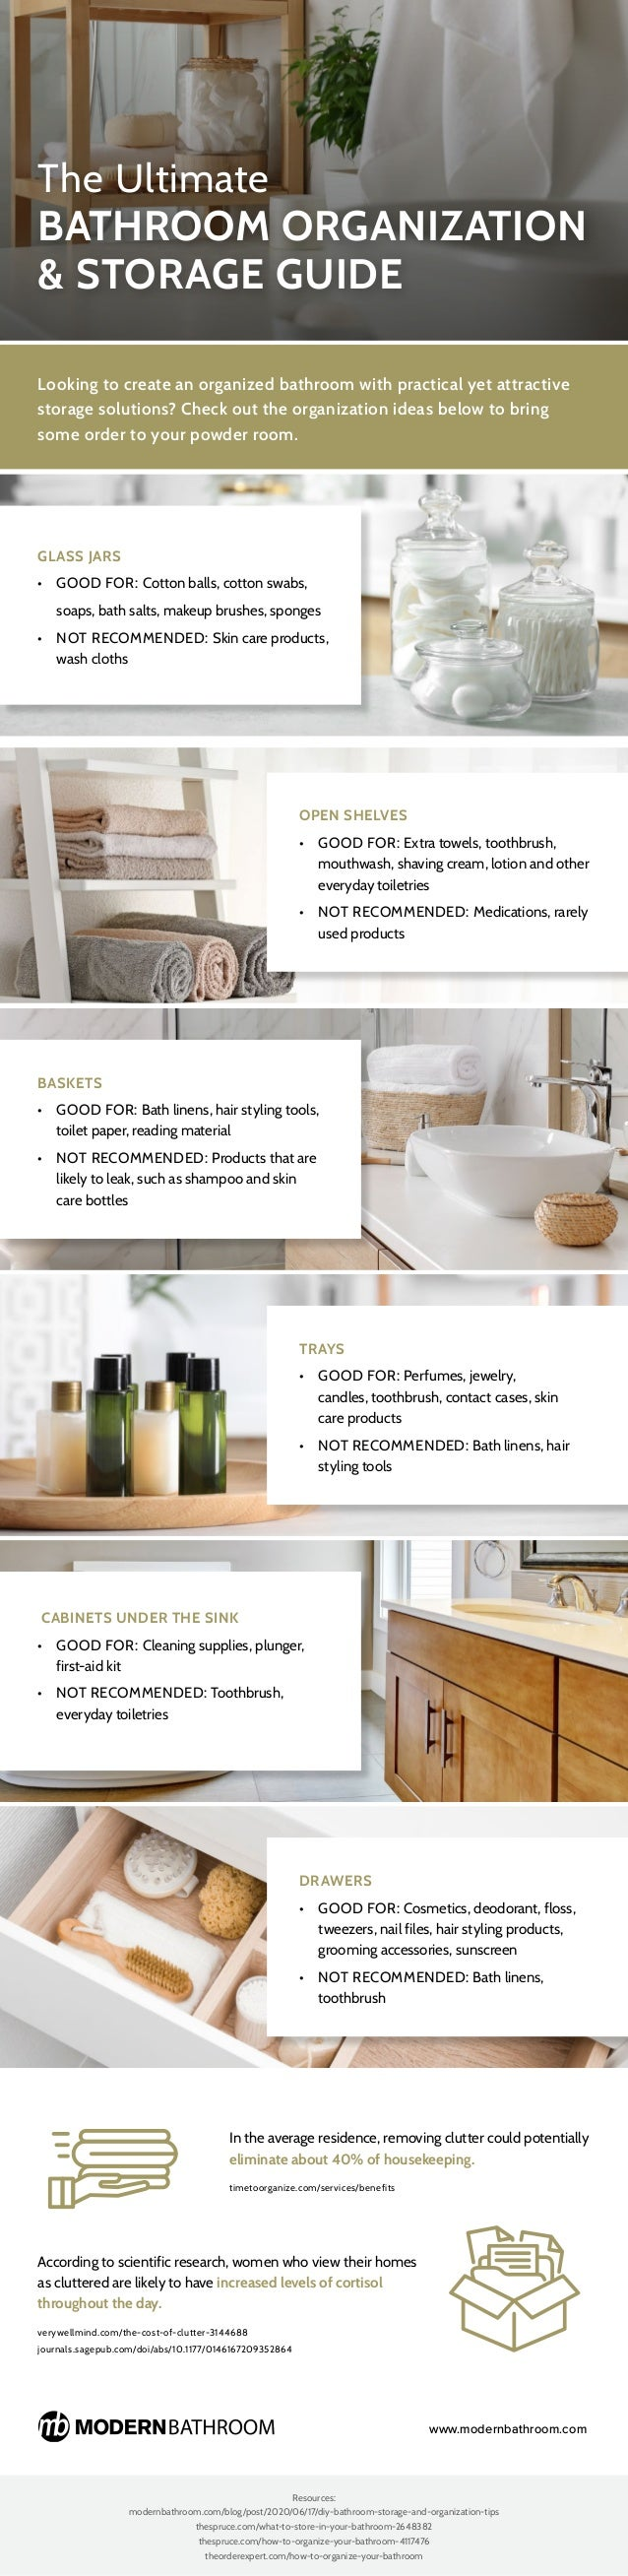 The Ultimate Bathroom Organization & Storage Guide